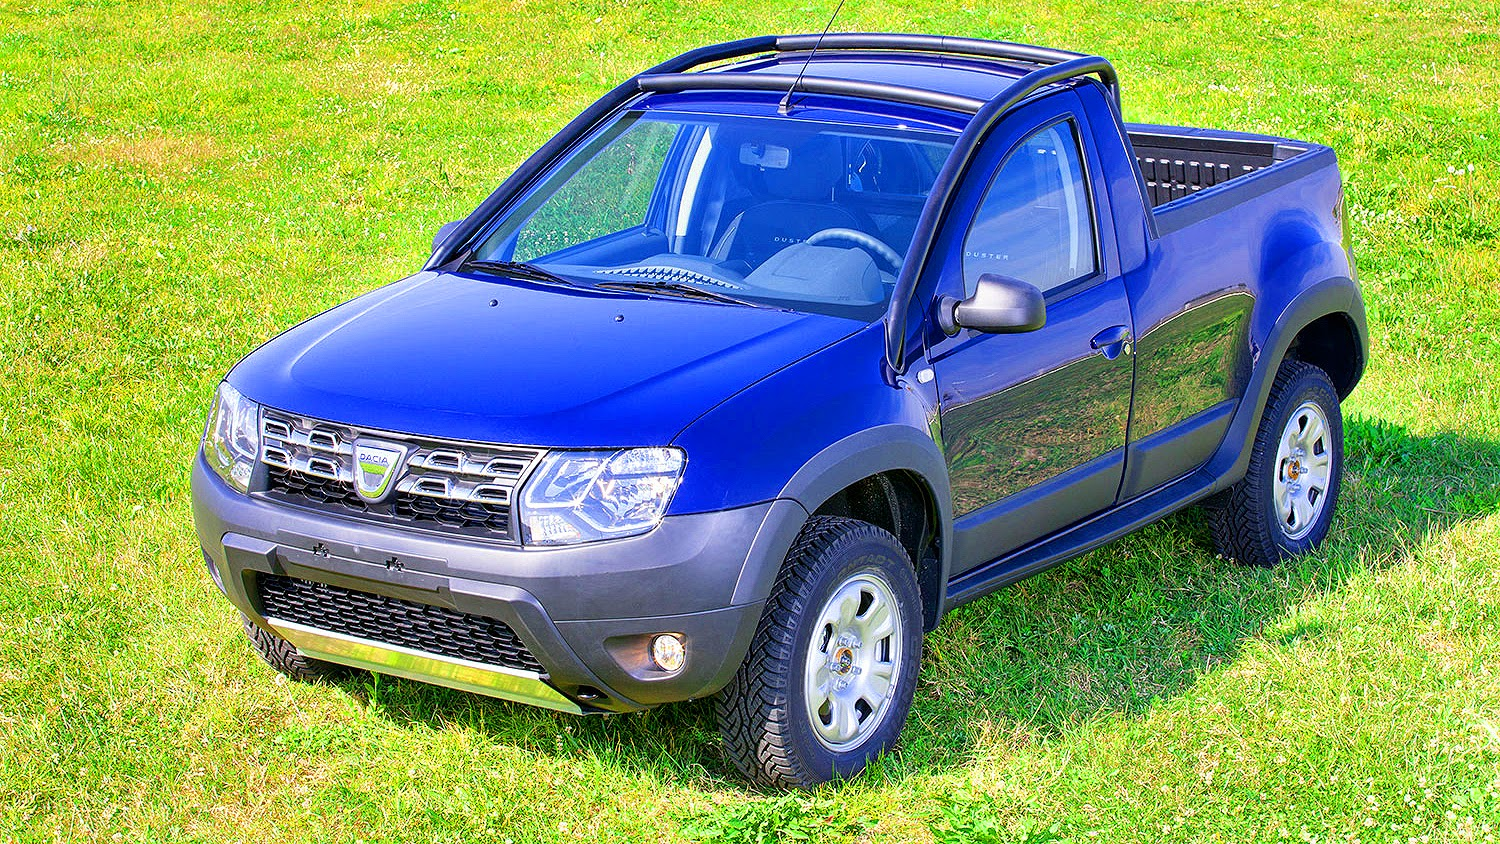 romturingia dacia duster pickup 4x4 2014 1 5 dci turbo diesel 110 cv carwp. Black Bedroom Furniture Sets. Home Design Ideas